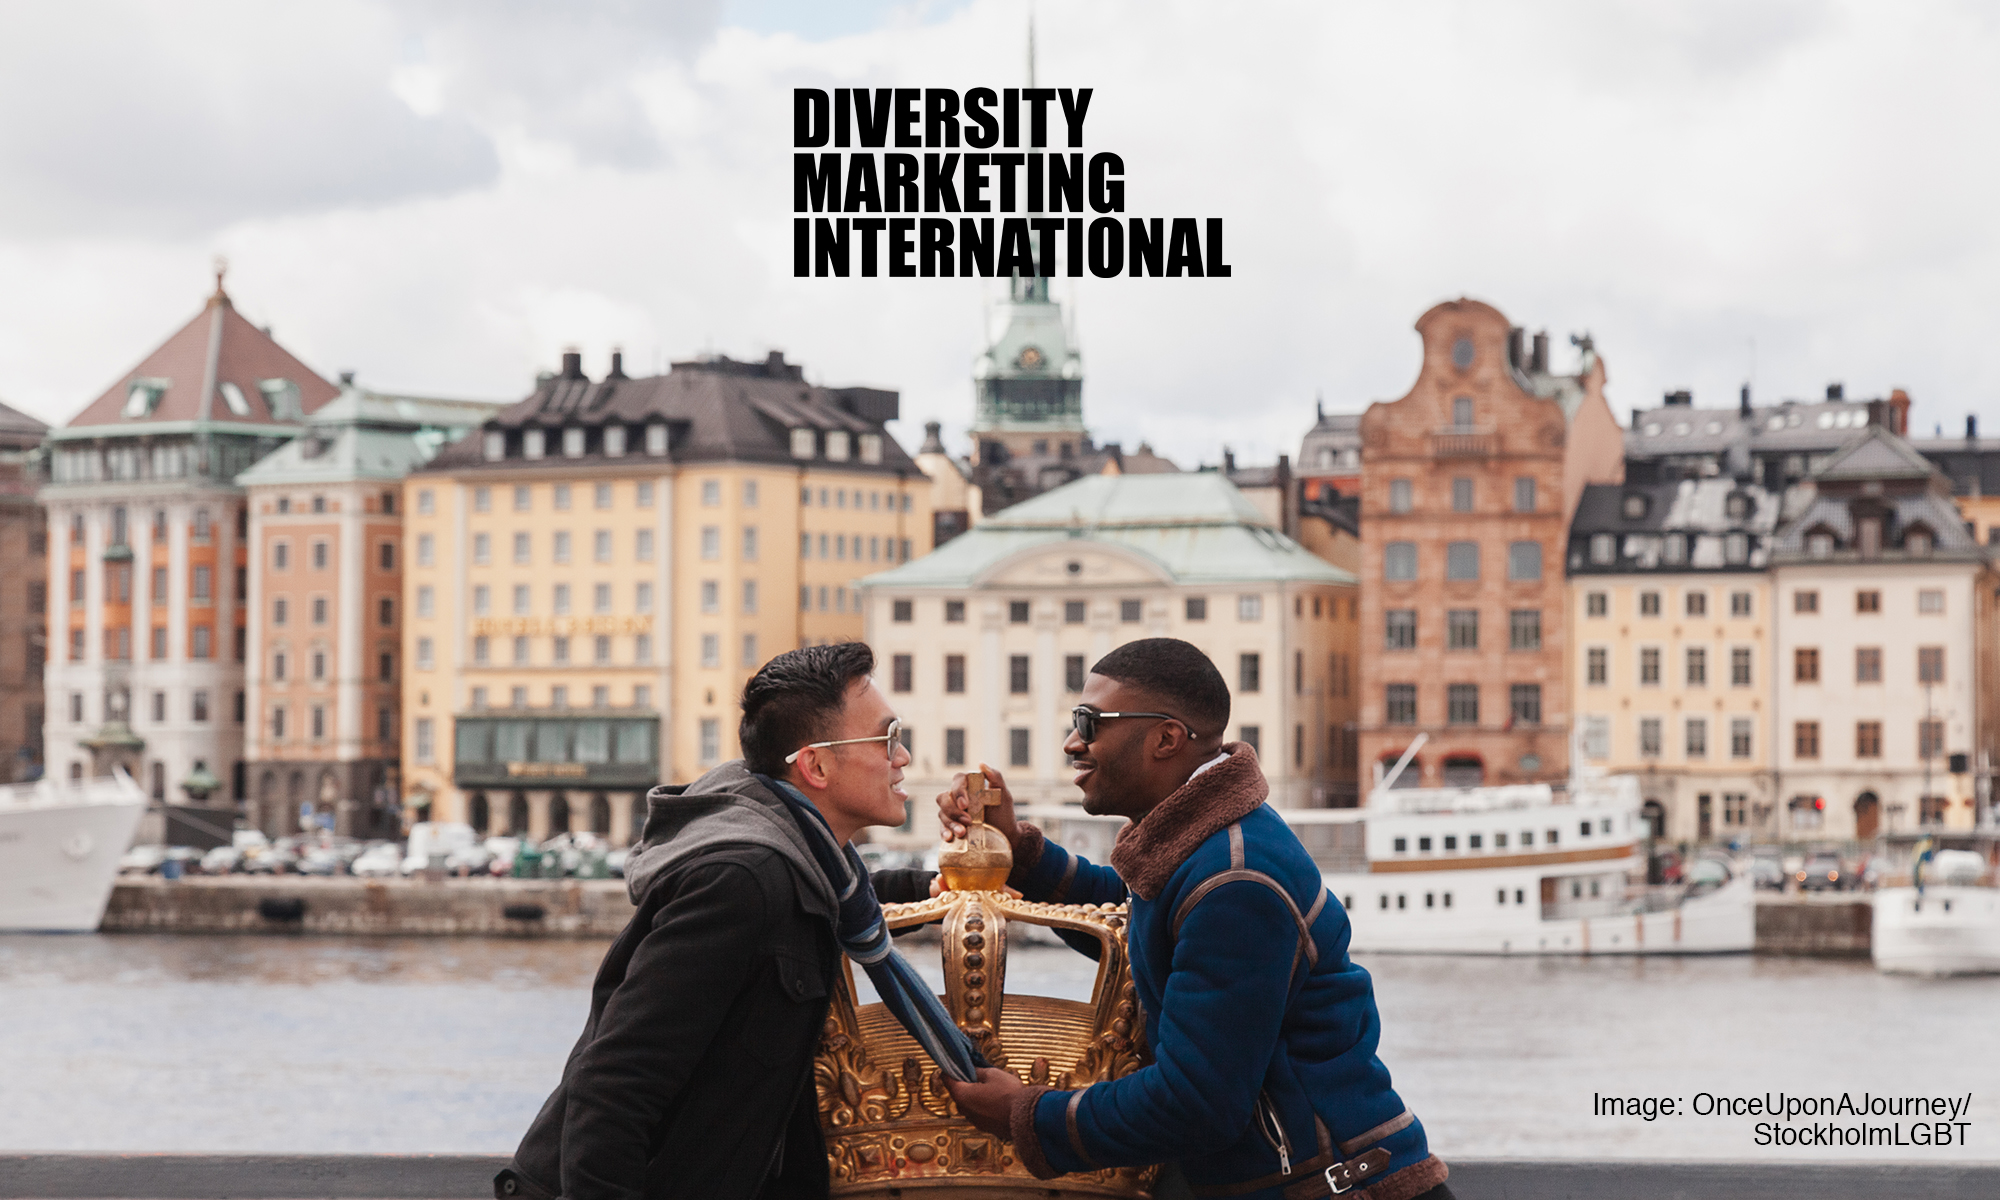 Diversity Marketing International